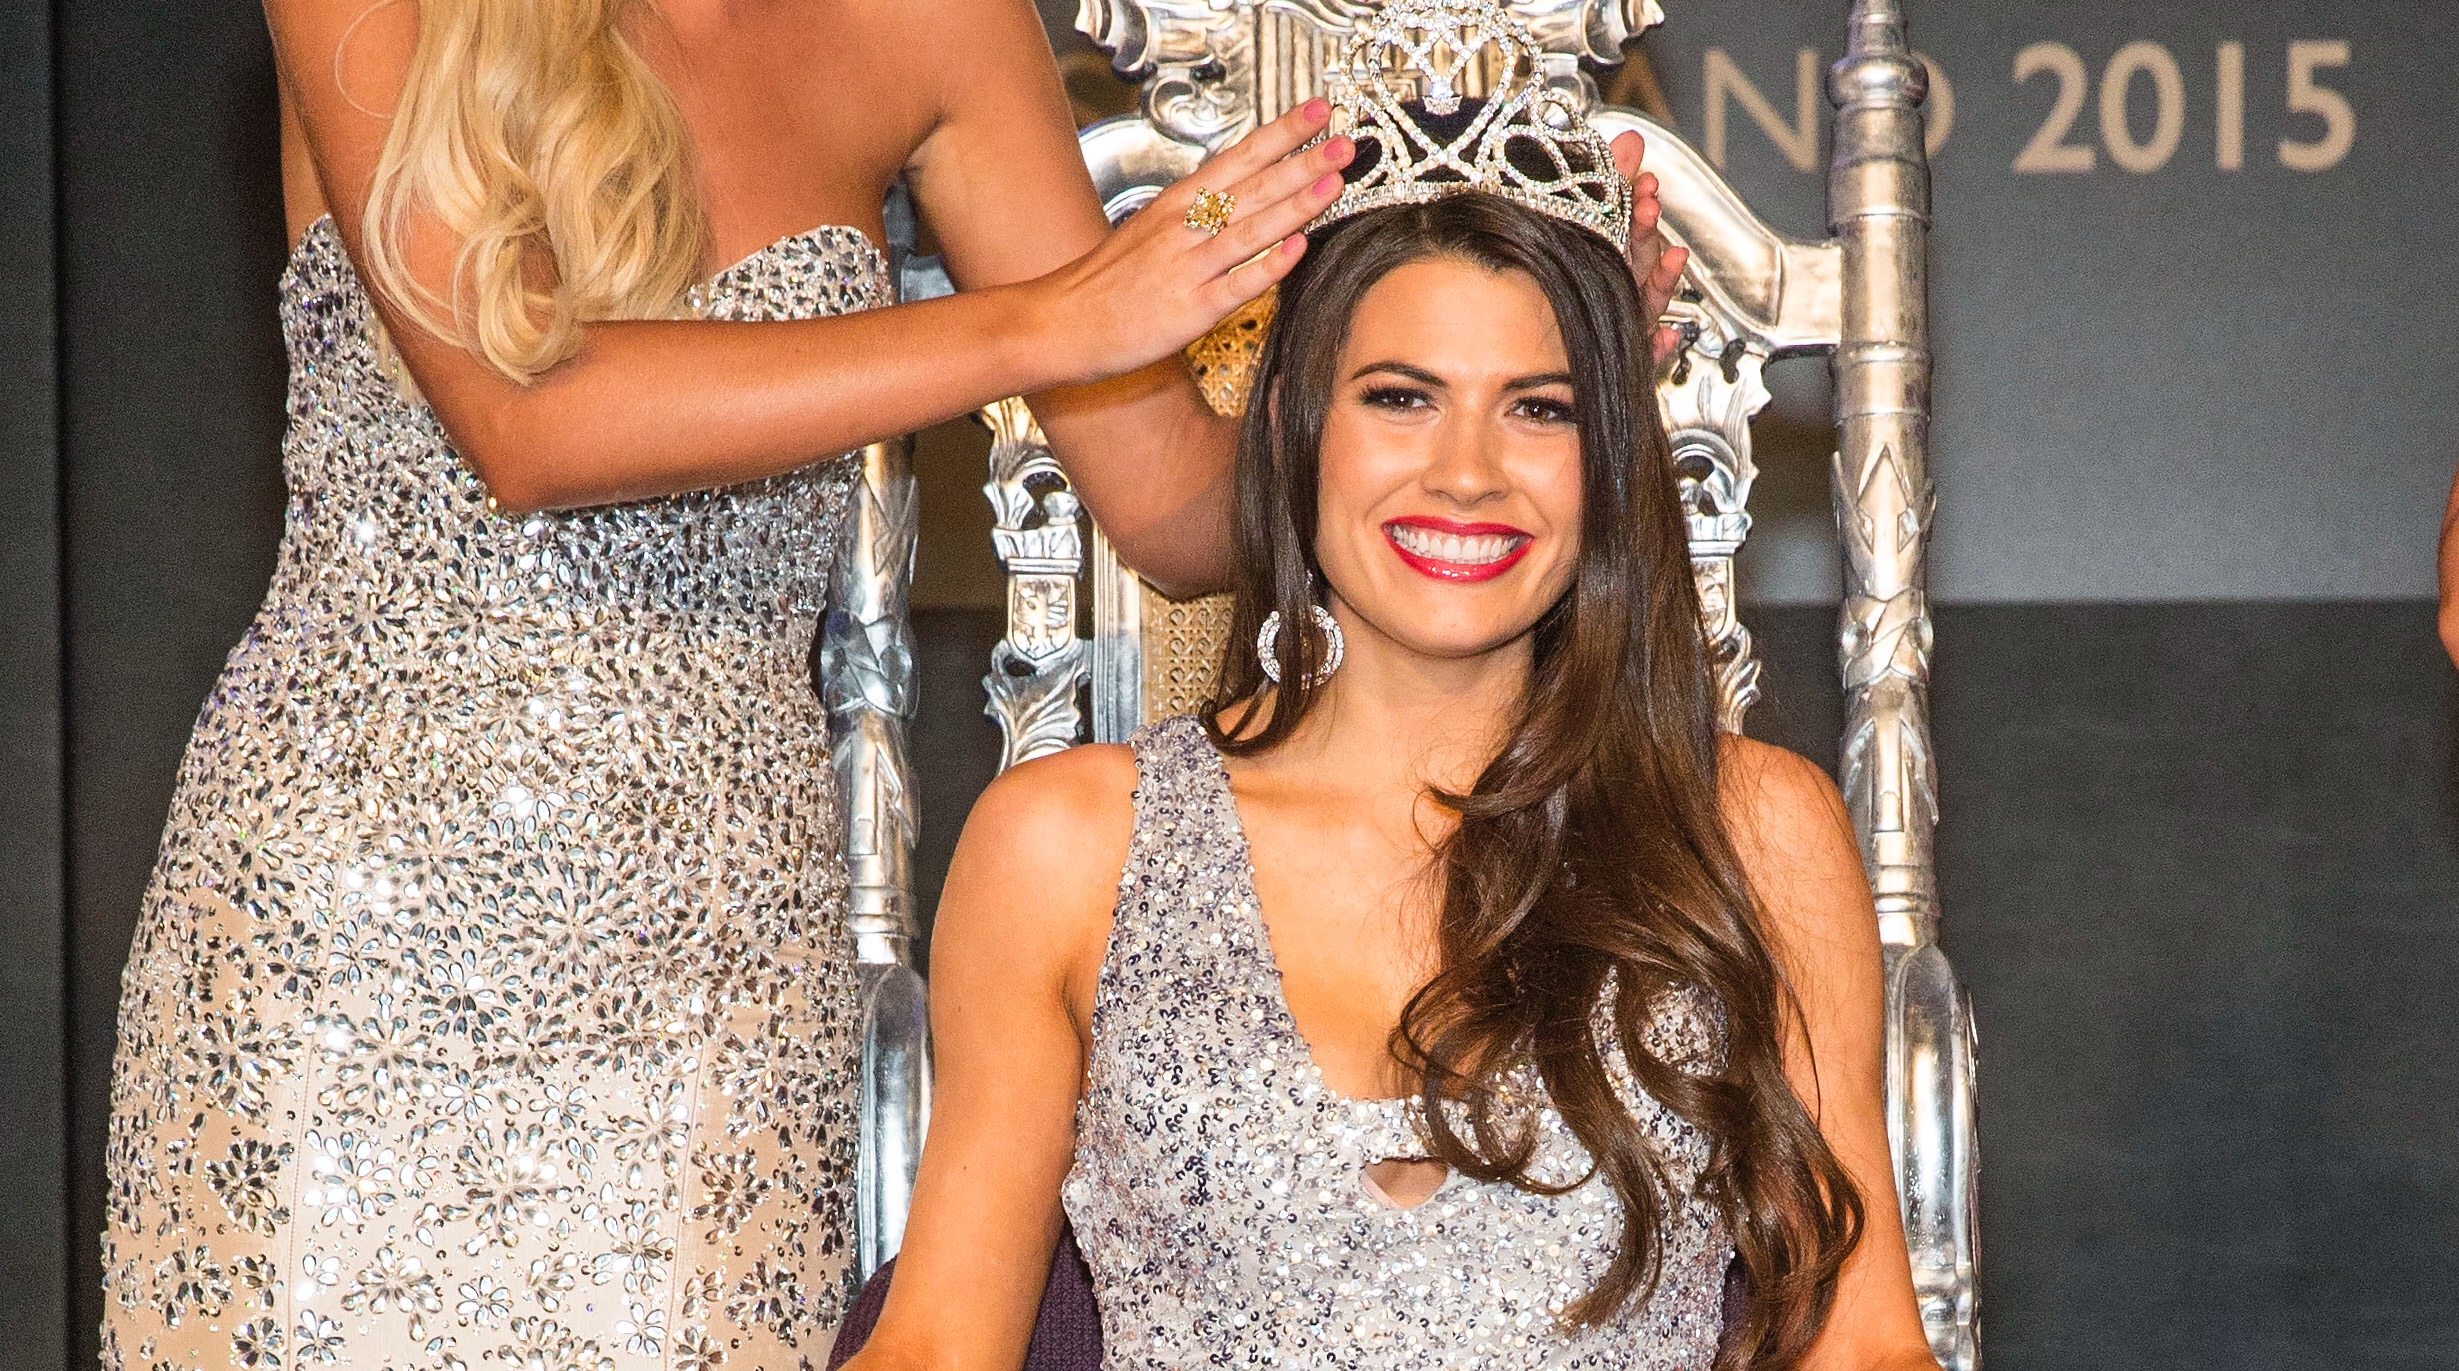 27-08-2015 Miss Scotland 2015 final at Raddison Blu, Glasgow.  Ellie McKeating (Miss Scot 2015) crowns Mhairi Fergusson  Pic:Andy Barr  www.andybarr.com  Copyright Andrew Barr Photography. No reuse without permission. andybarr@mac.com +44 7974923919